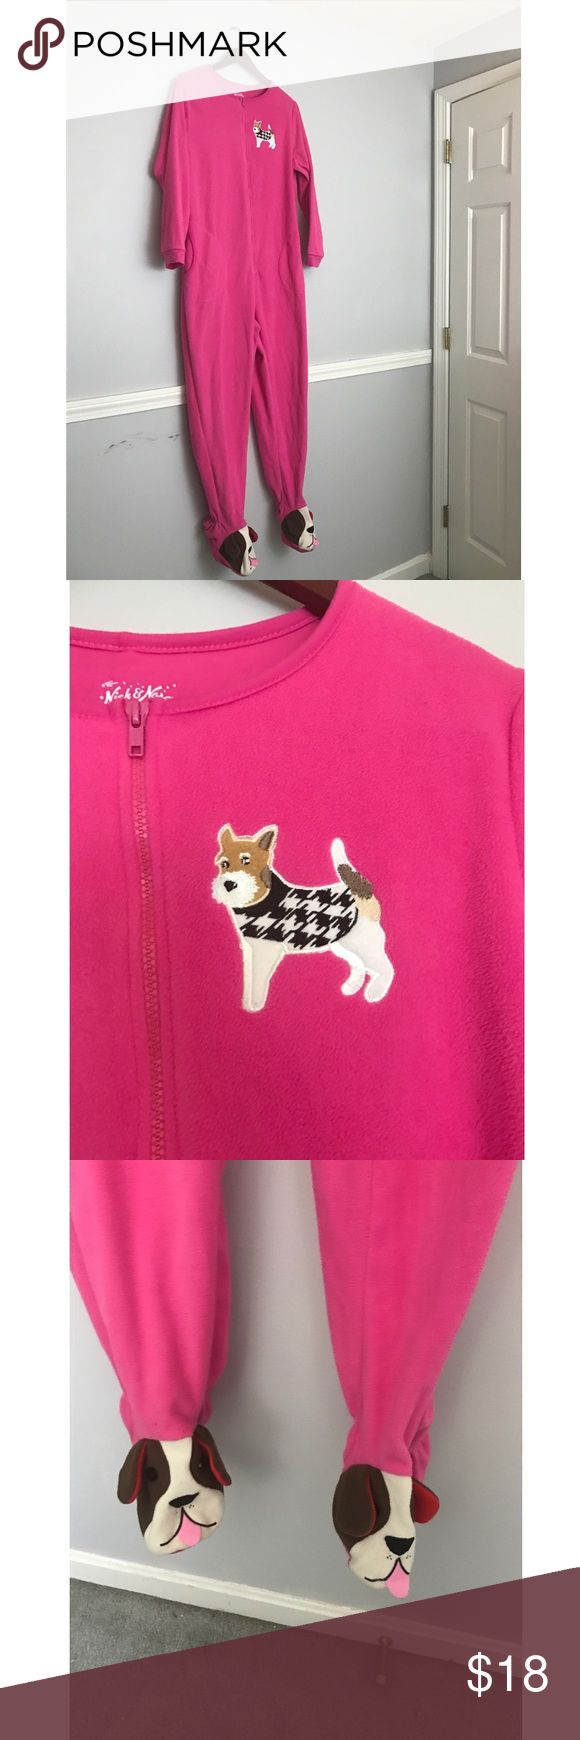 Nick and Nora Onsie Comes from a smoke-free home but we DO have a dog. I do not accept trades. If you have any questions or concerns please let me know! Nick & Nora Intimates & Sleepwear Pajamas